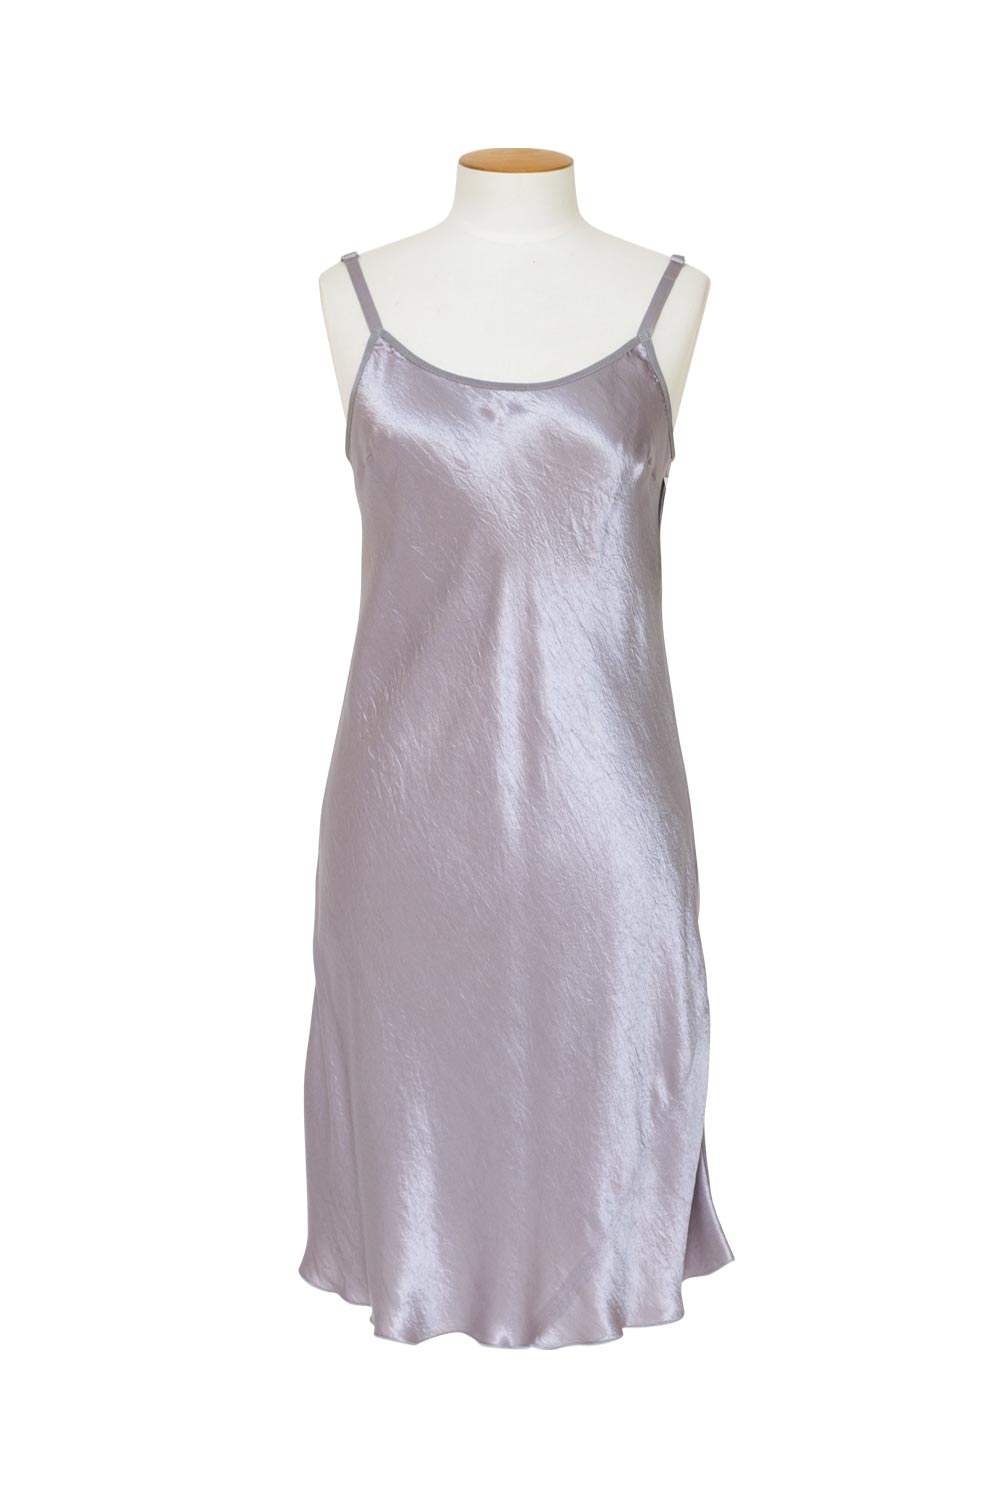 Cashews - B83 Satin Slip